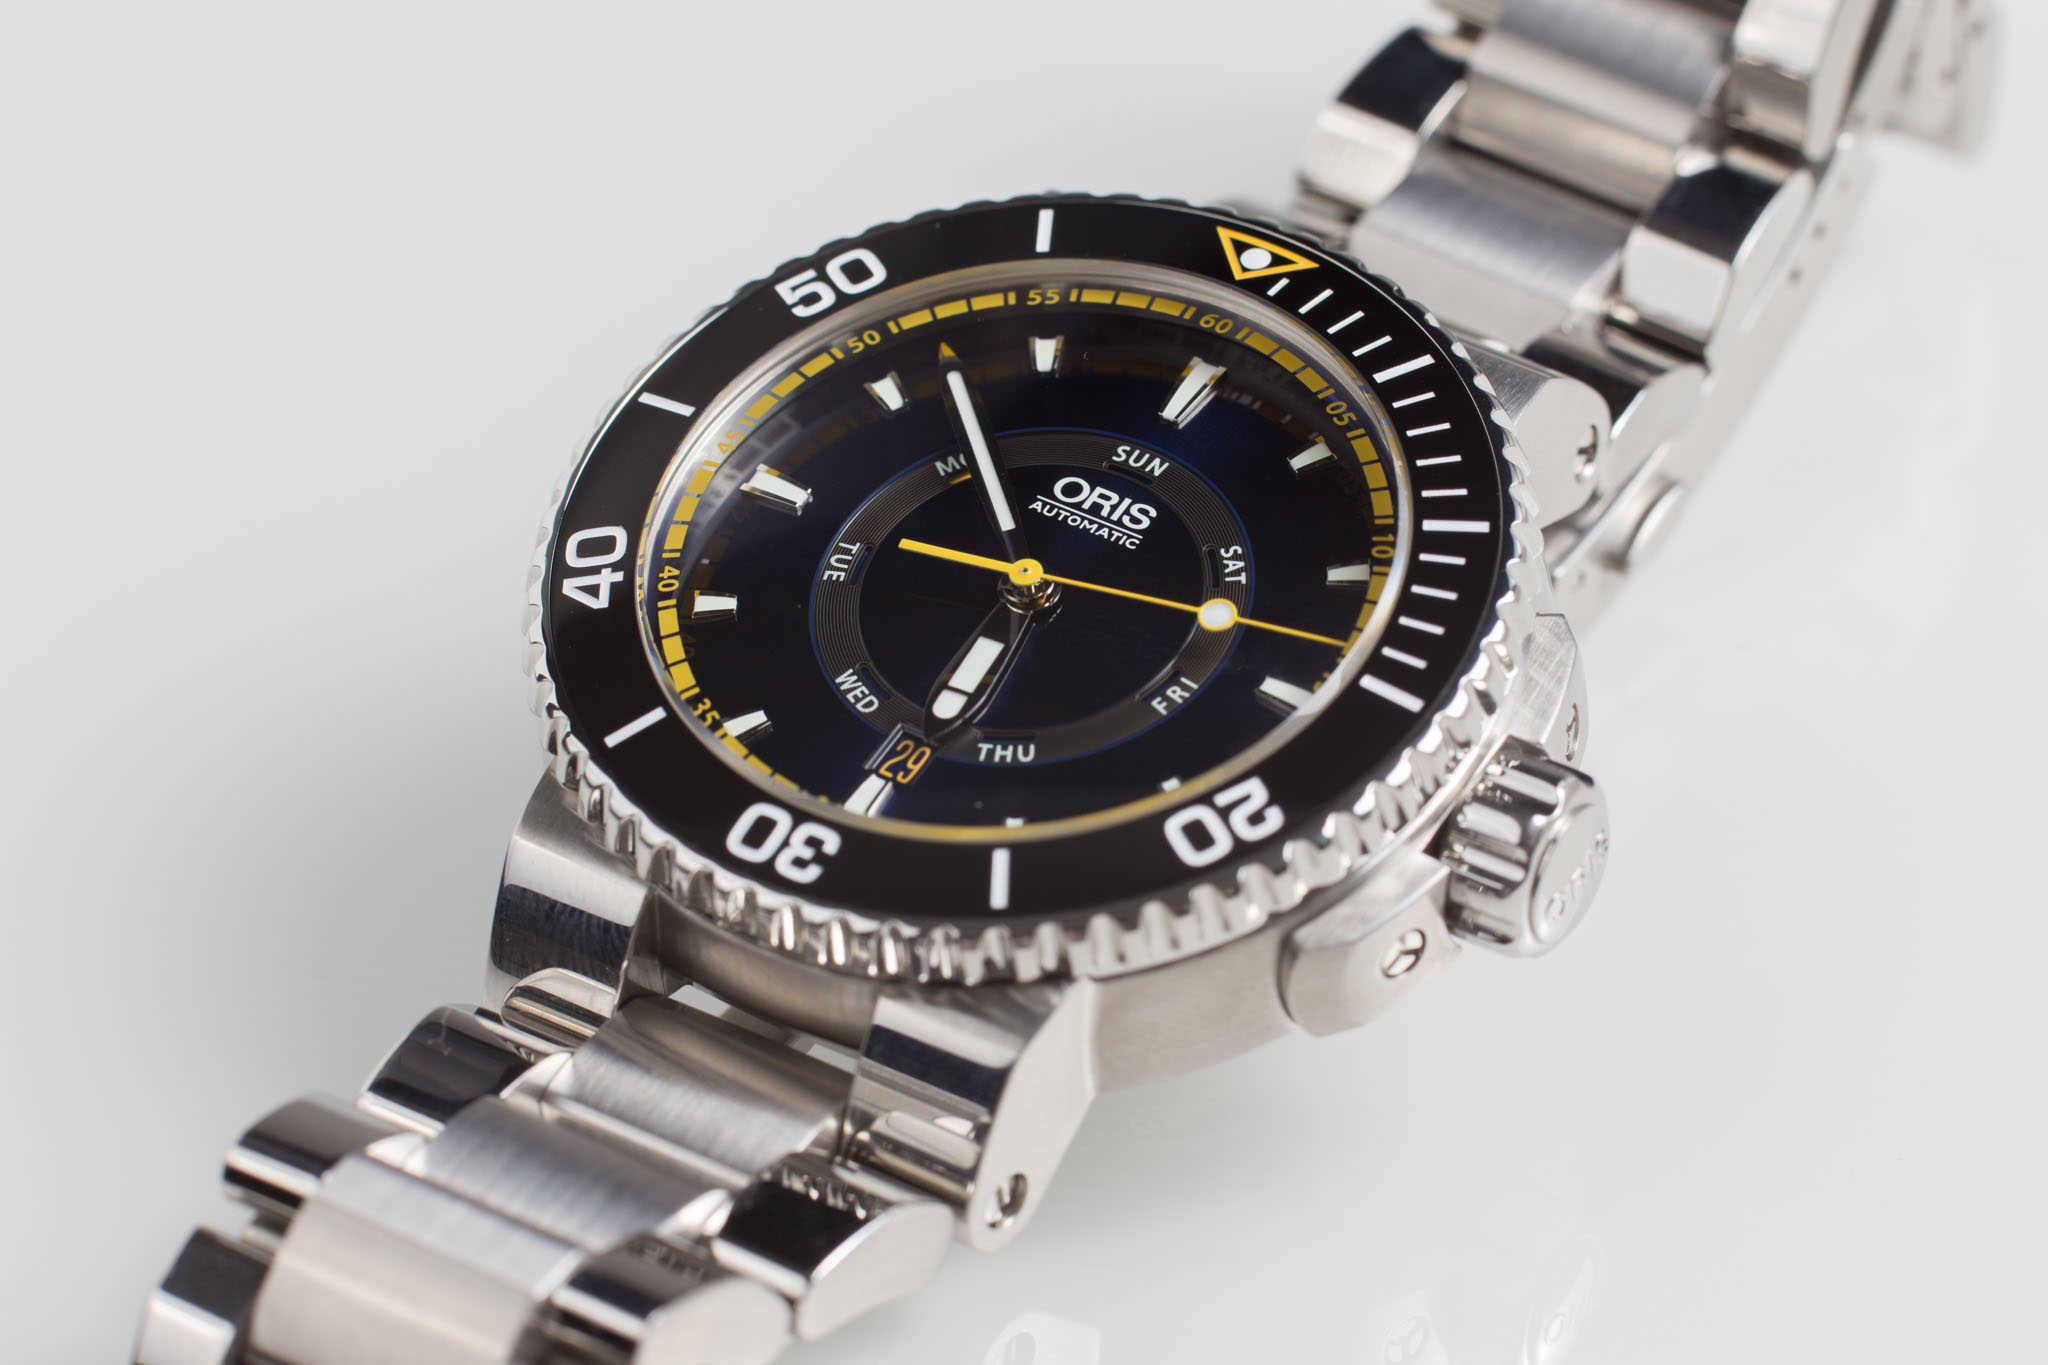 oris-aquis-great-barrier-reef-limited-edition-ii_img_1186